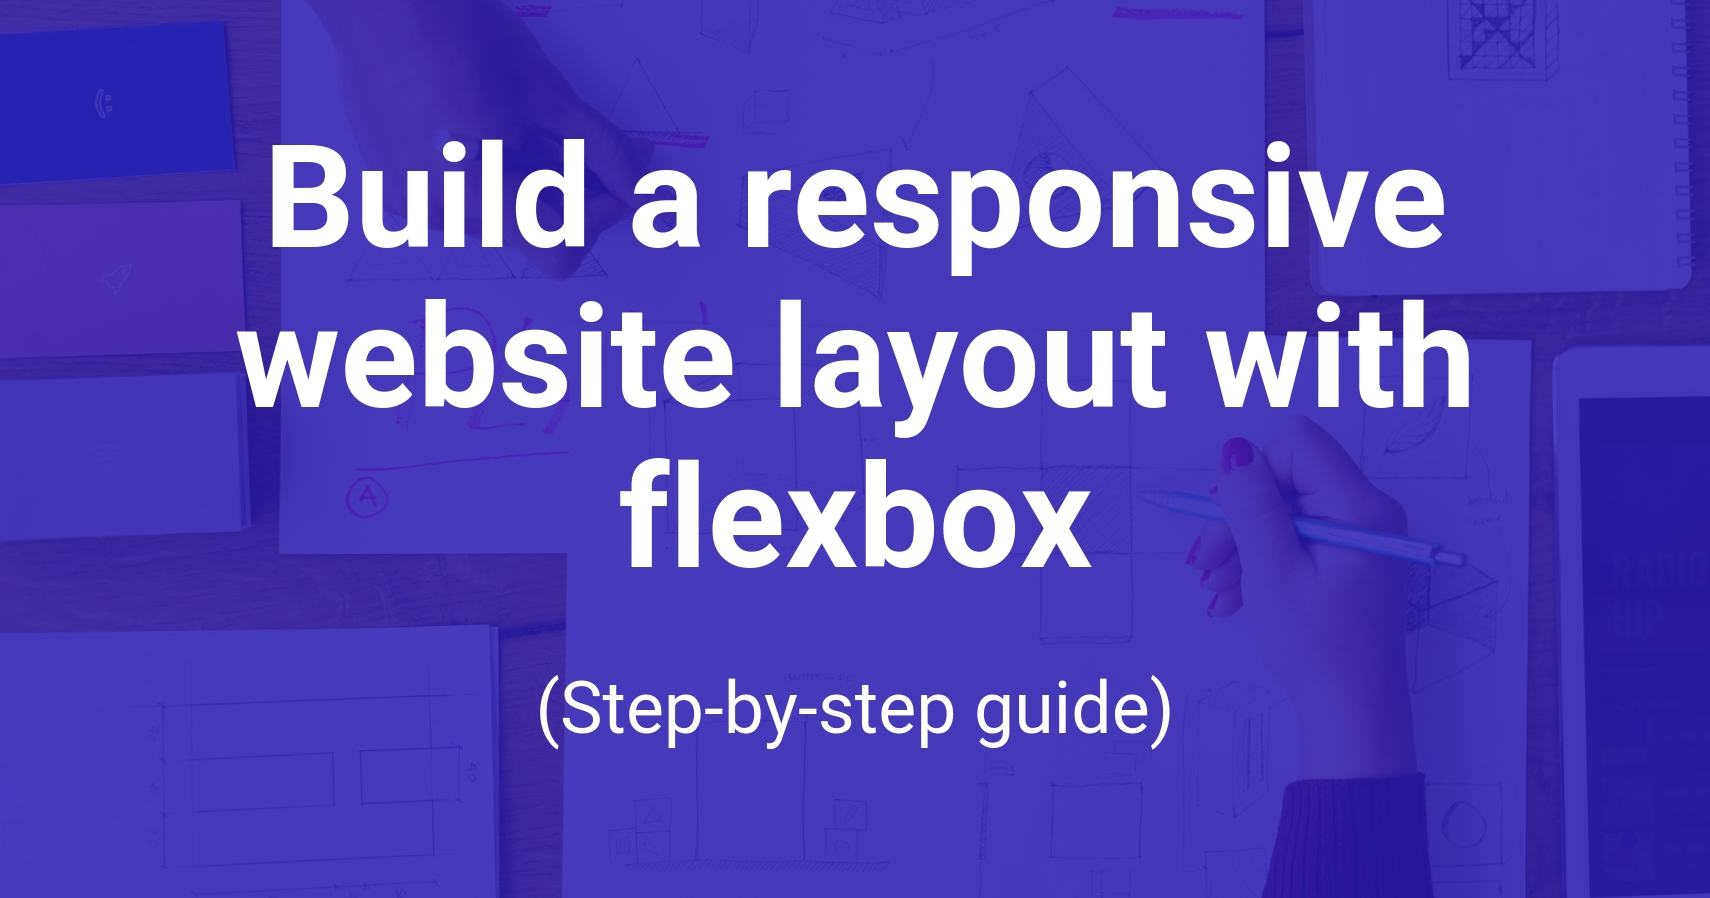 Build a responsive website layout with flexbox (Step-by-step guide